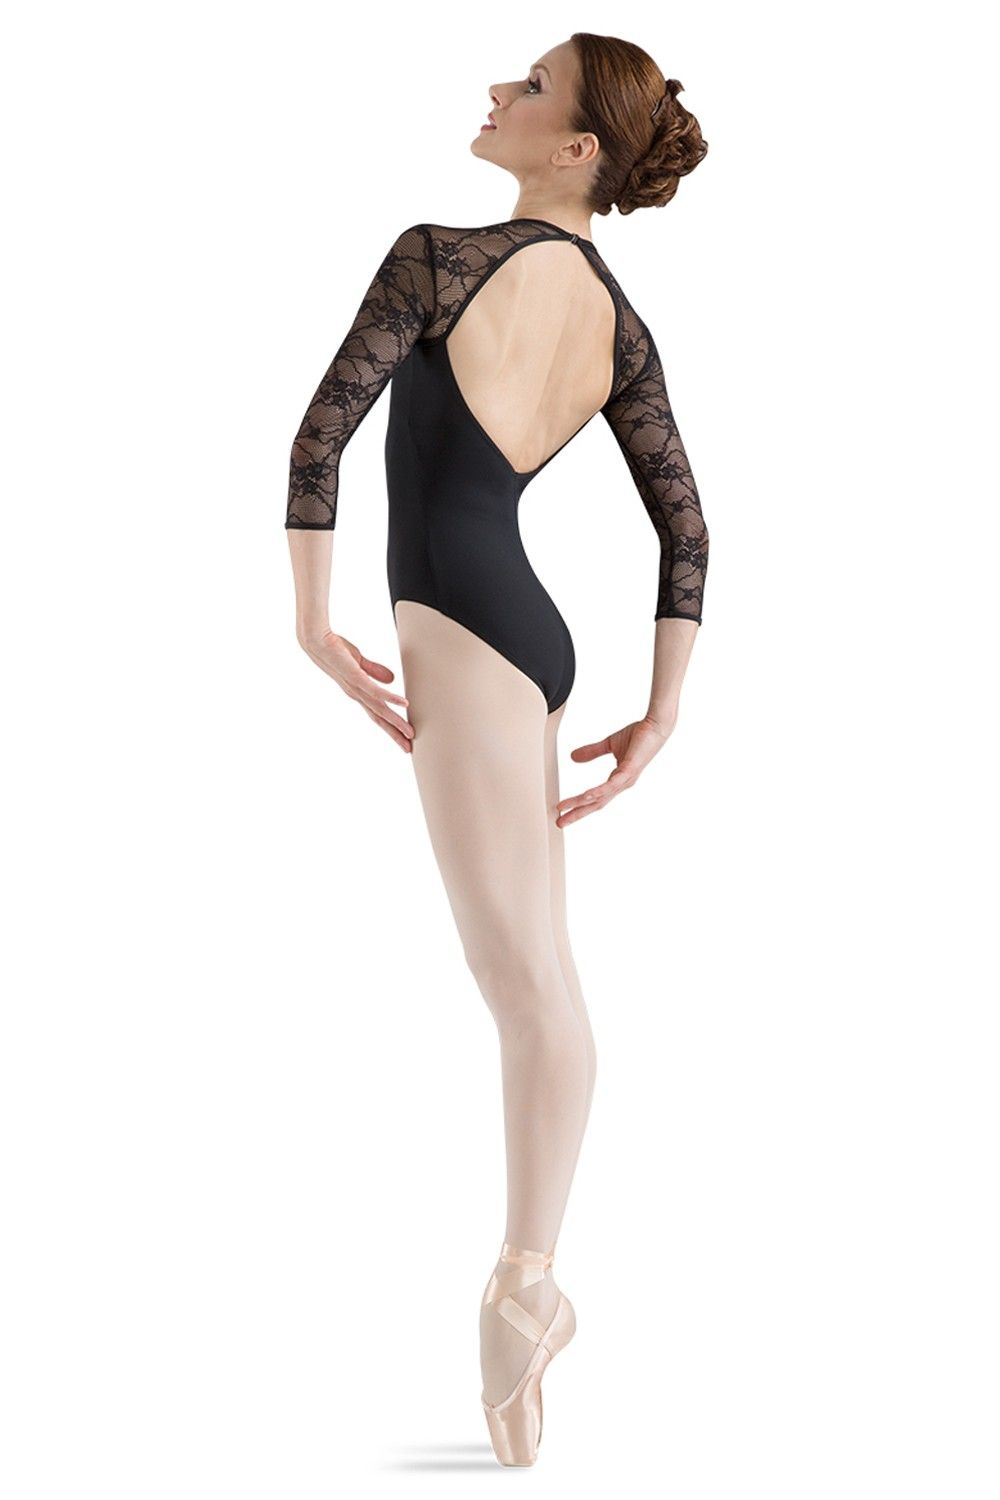 983442802f0a L6016- Lace Bodice Open Back Long Sleeve Leotard - Women's Dancewear &  Accessories - Bloch® US Store